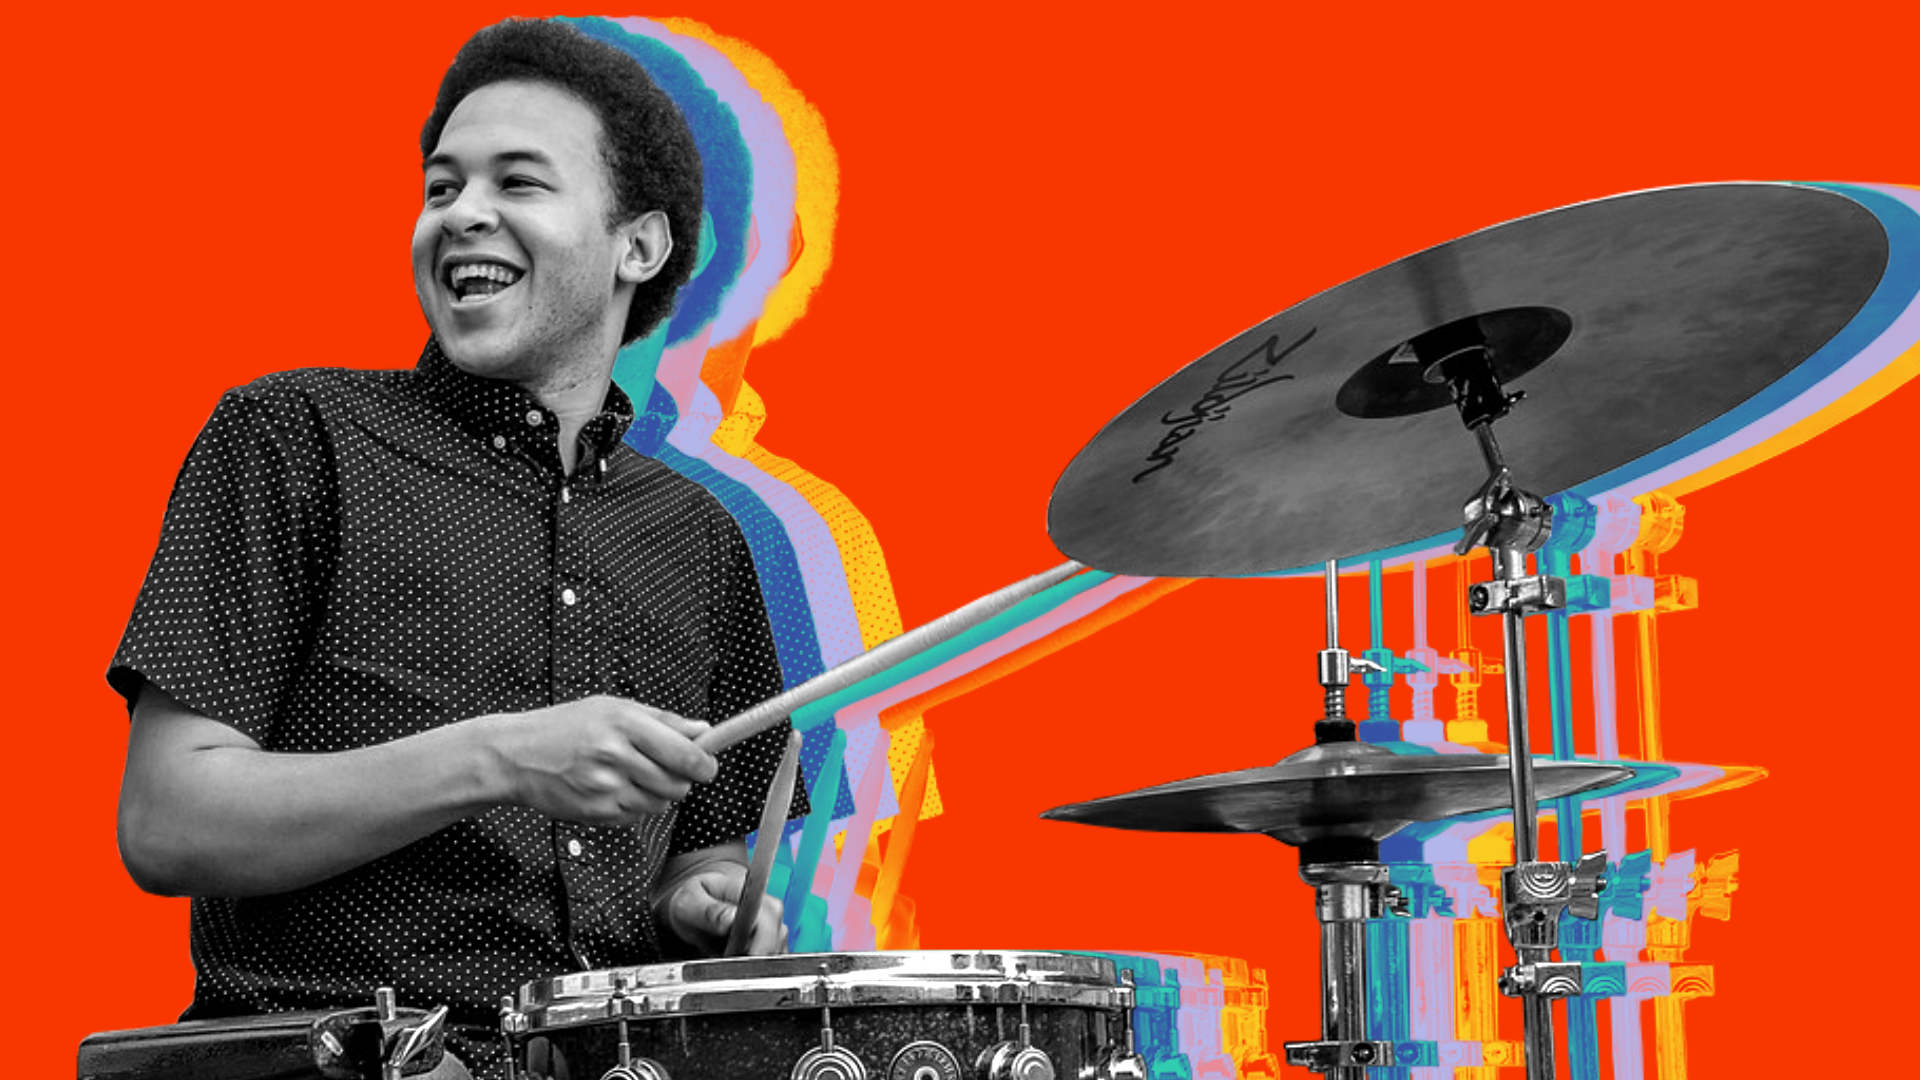 Dominic Anzalone playing drums with red background